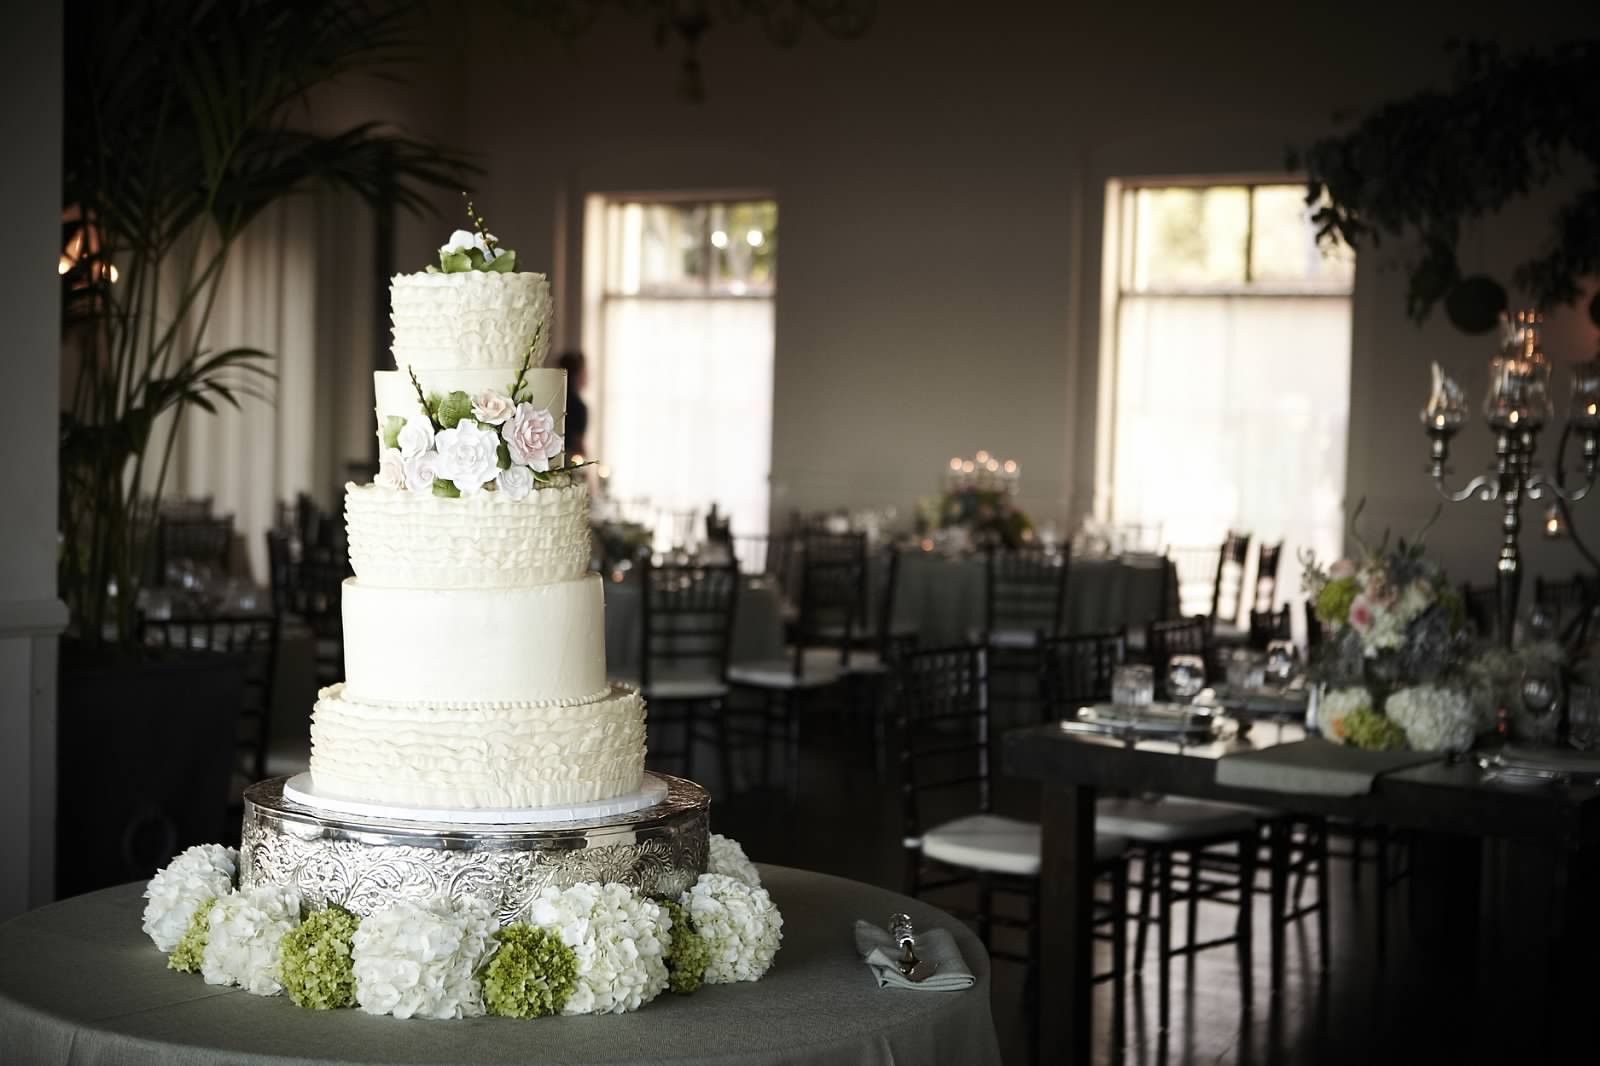 Wedding flowers for cake